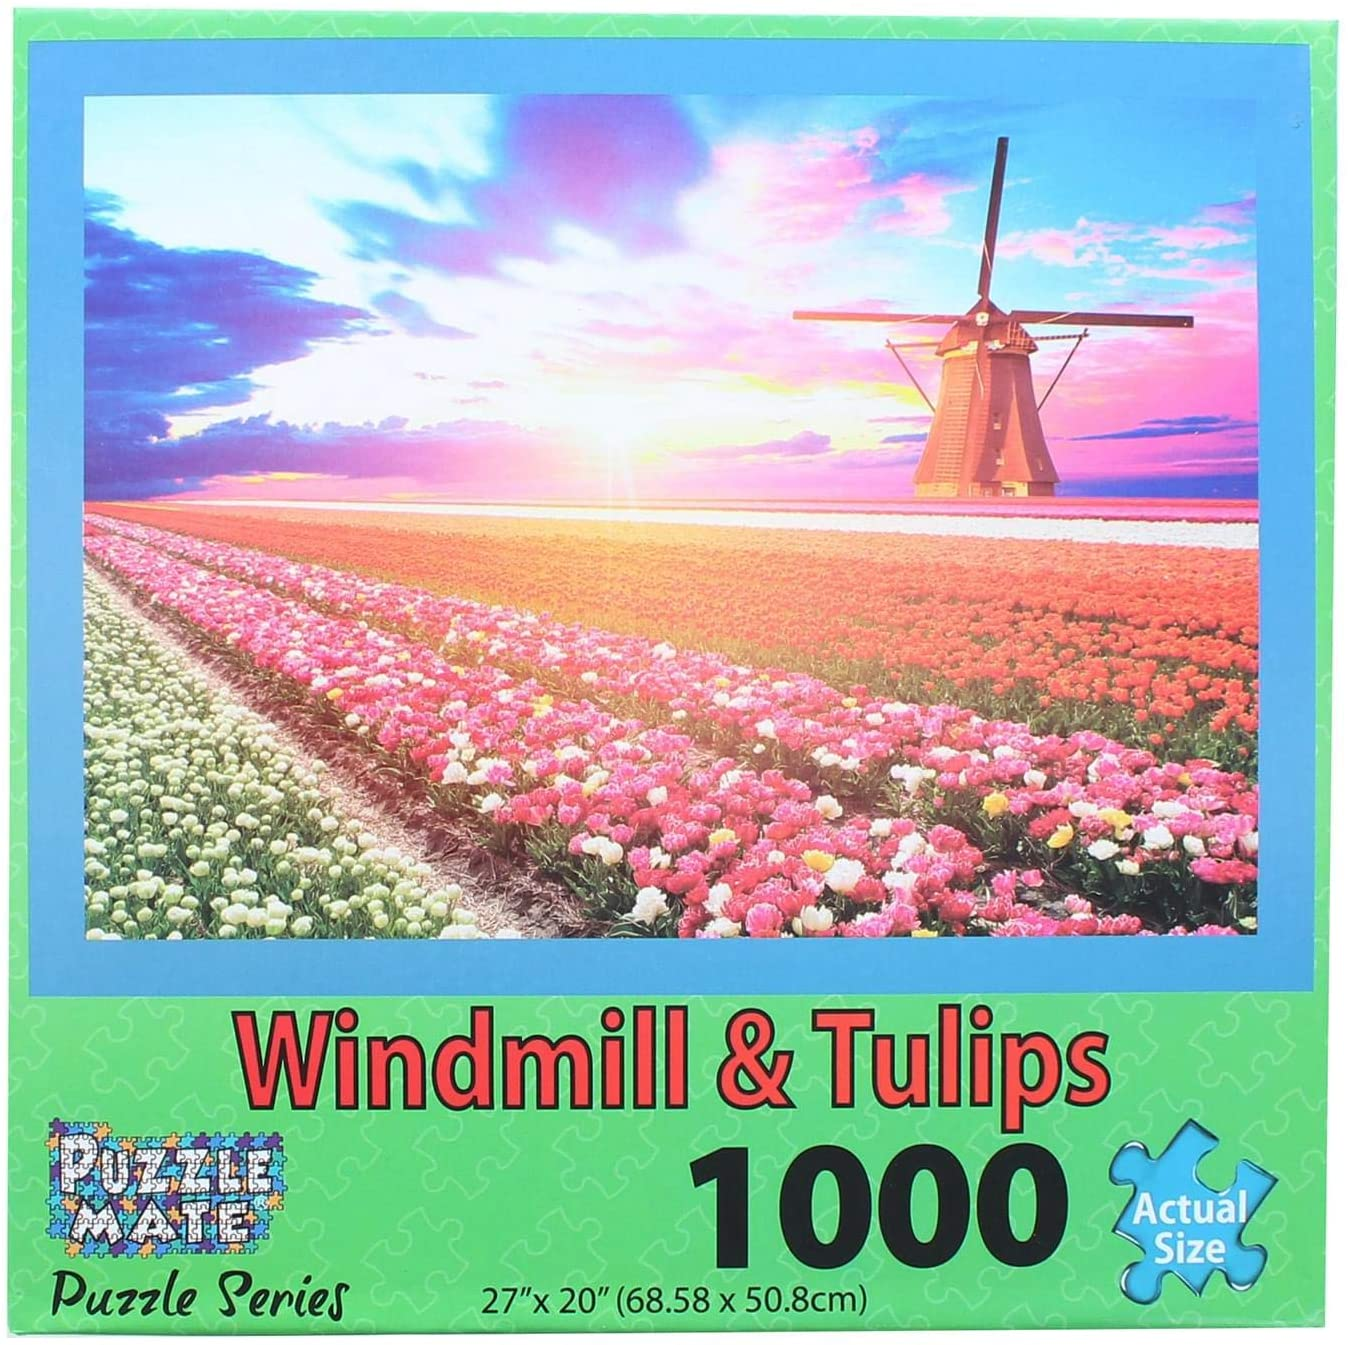 Puzzle Mate - Windmill & Tulips - 1000 Piece Jigsaw Puzzle